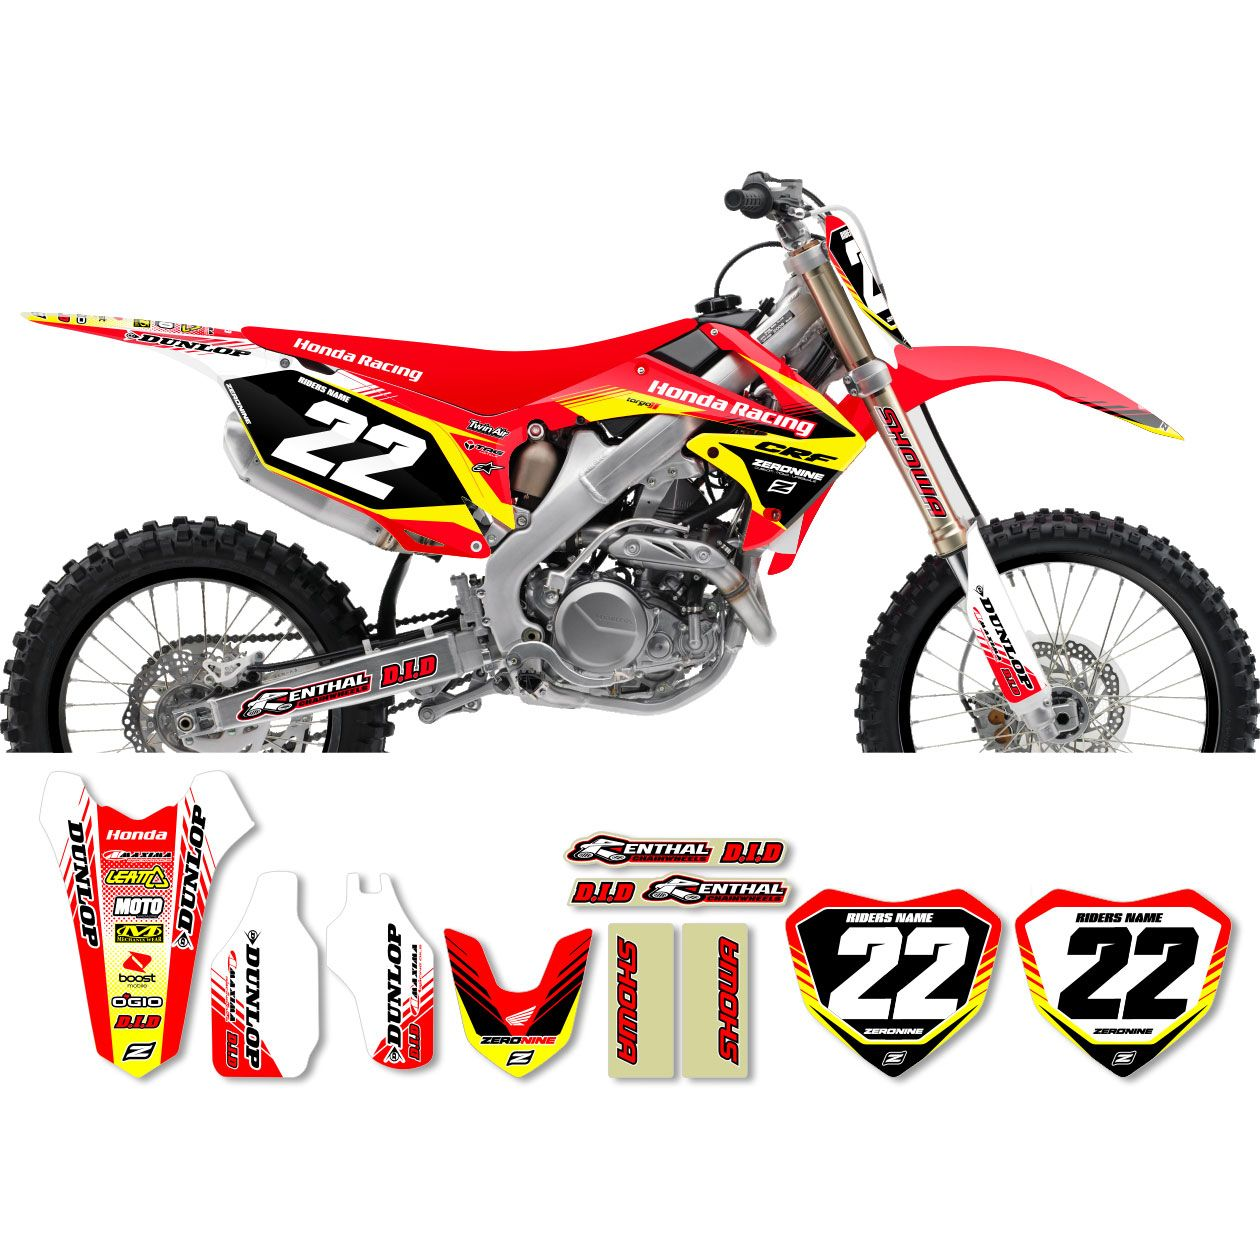 Vintage motocross number plate graphics - These Graphics Kit Are Printed On Scratch Resistant Ultracurve 20 Mil Vinyl With An Exclusive